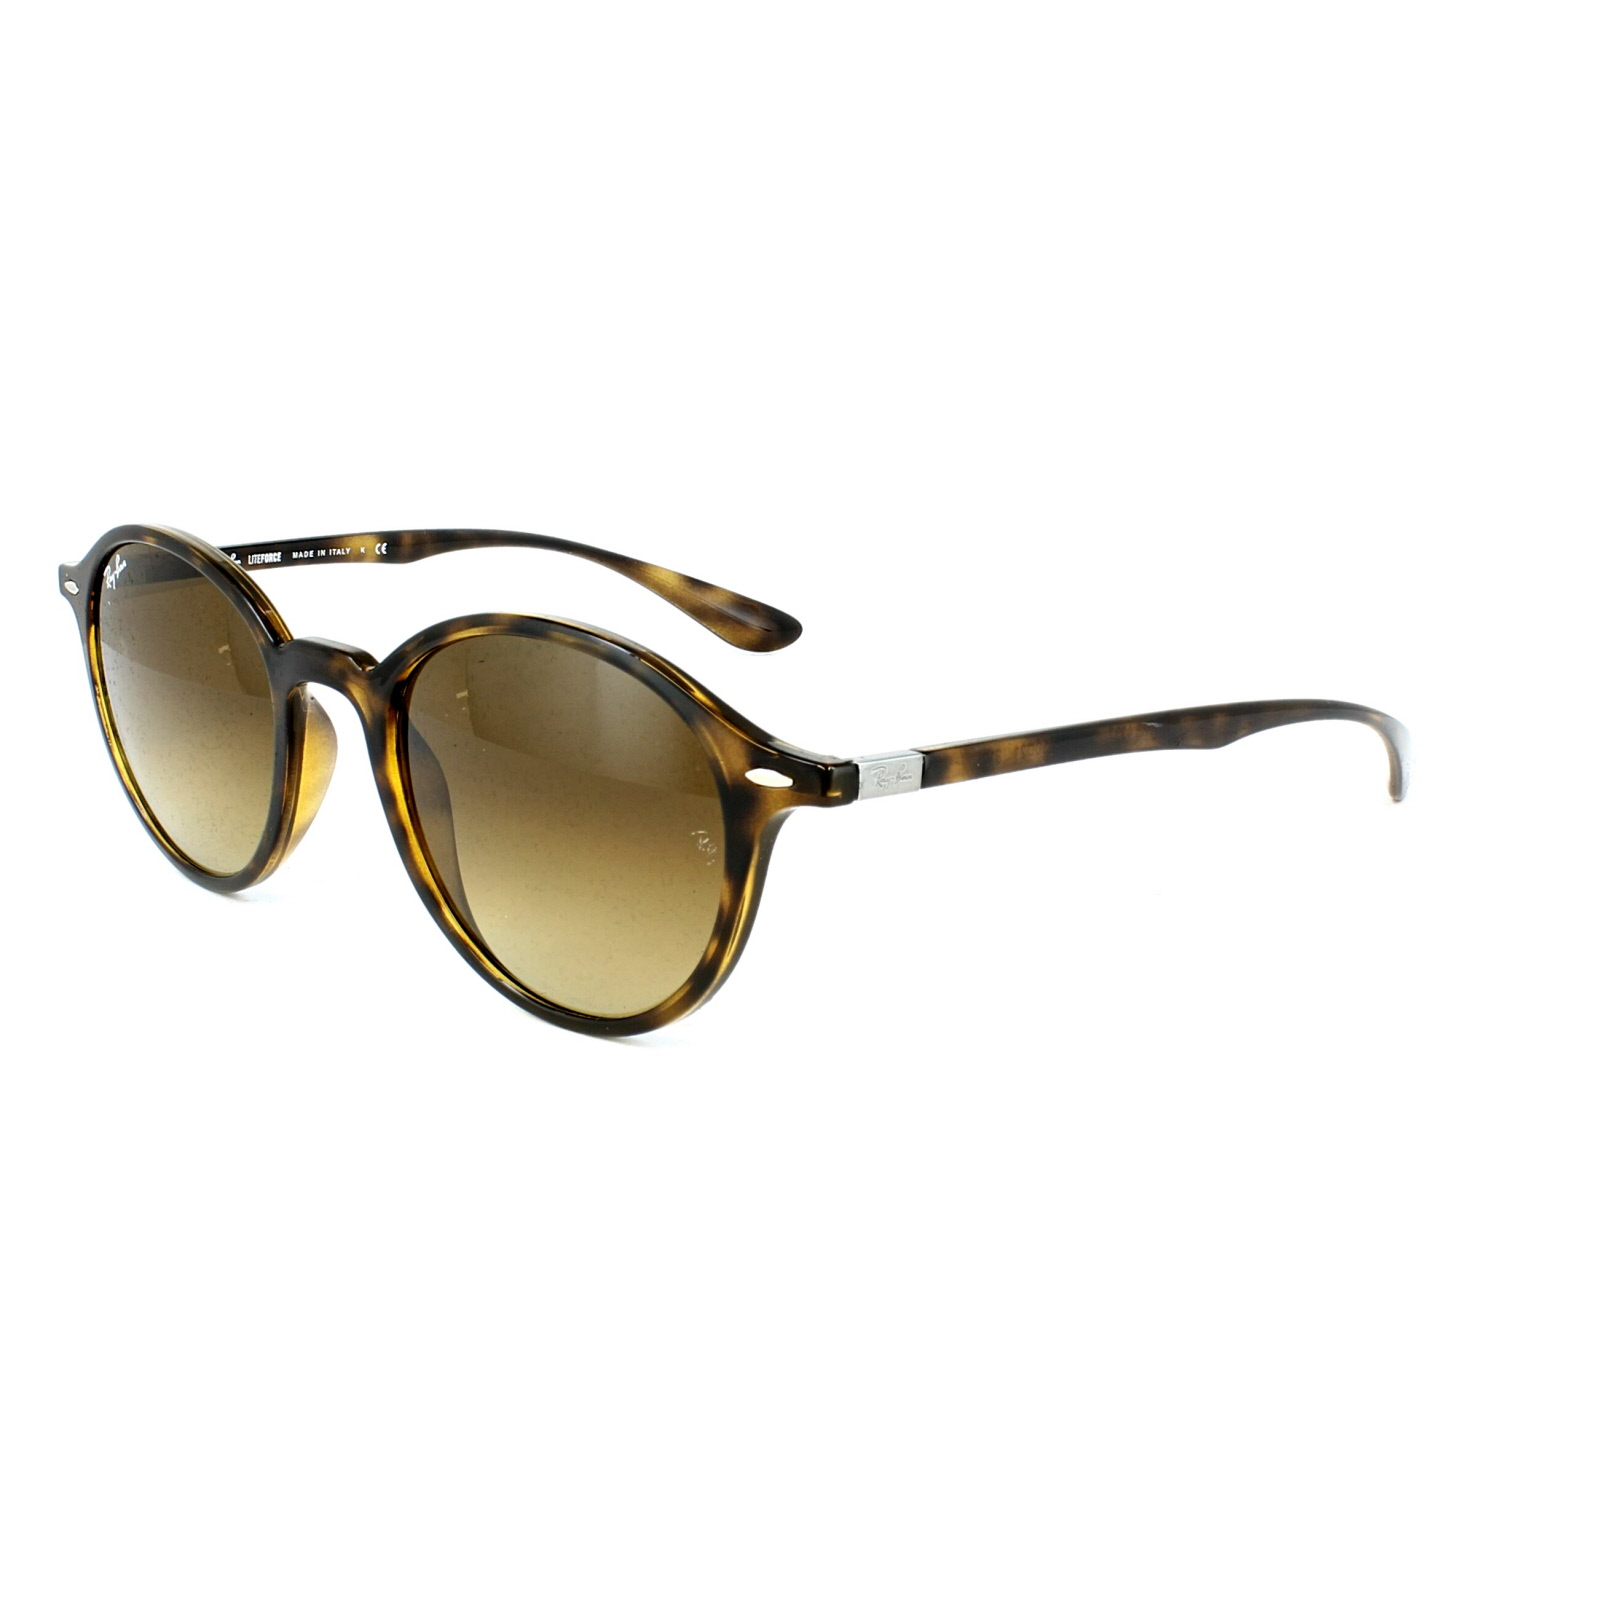 10732780a6c Sentinel Ray-Ban Sunglasses Round Liteforce 4237 710 85 Tortoise Brown  Gradient